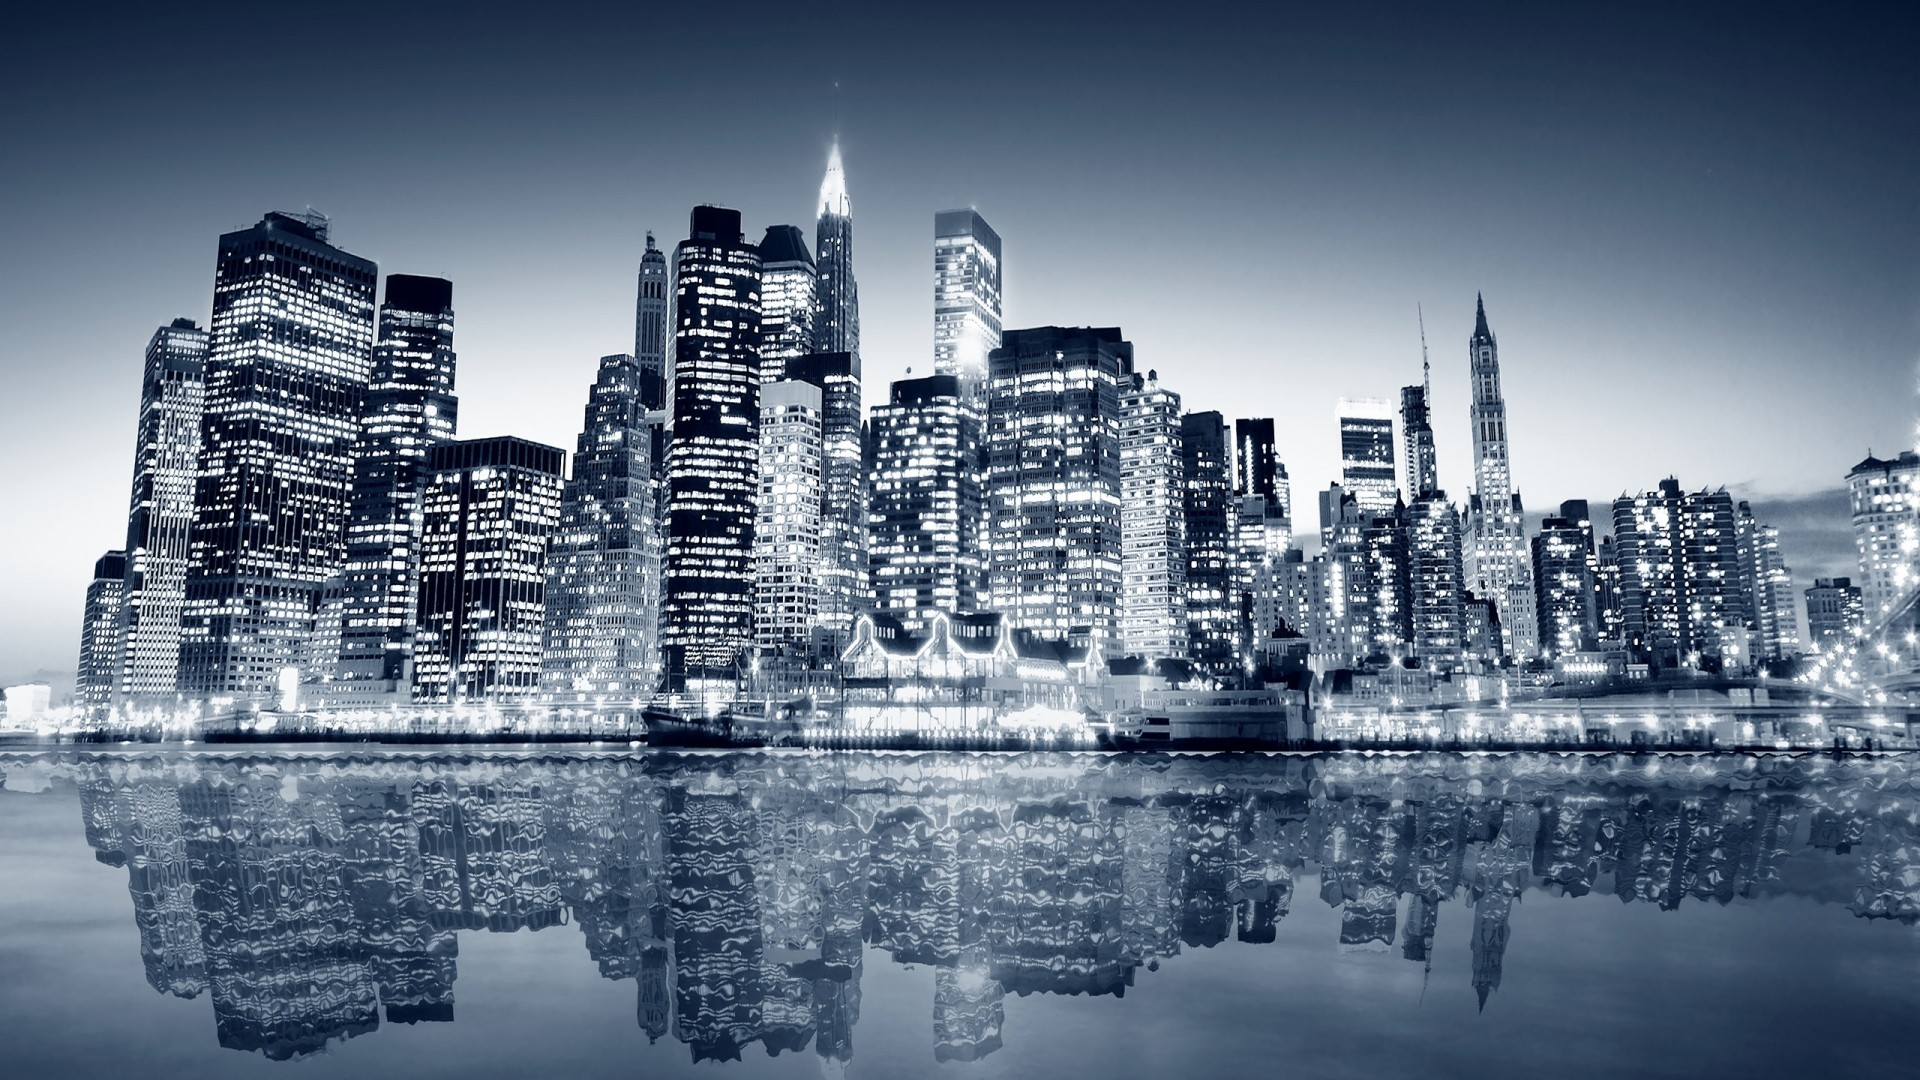 New York widescreen for desktop